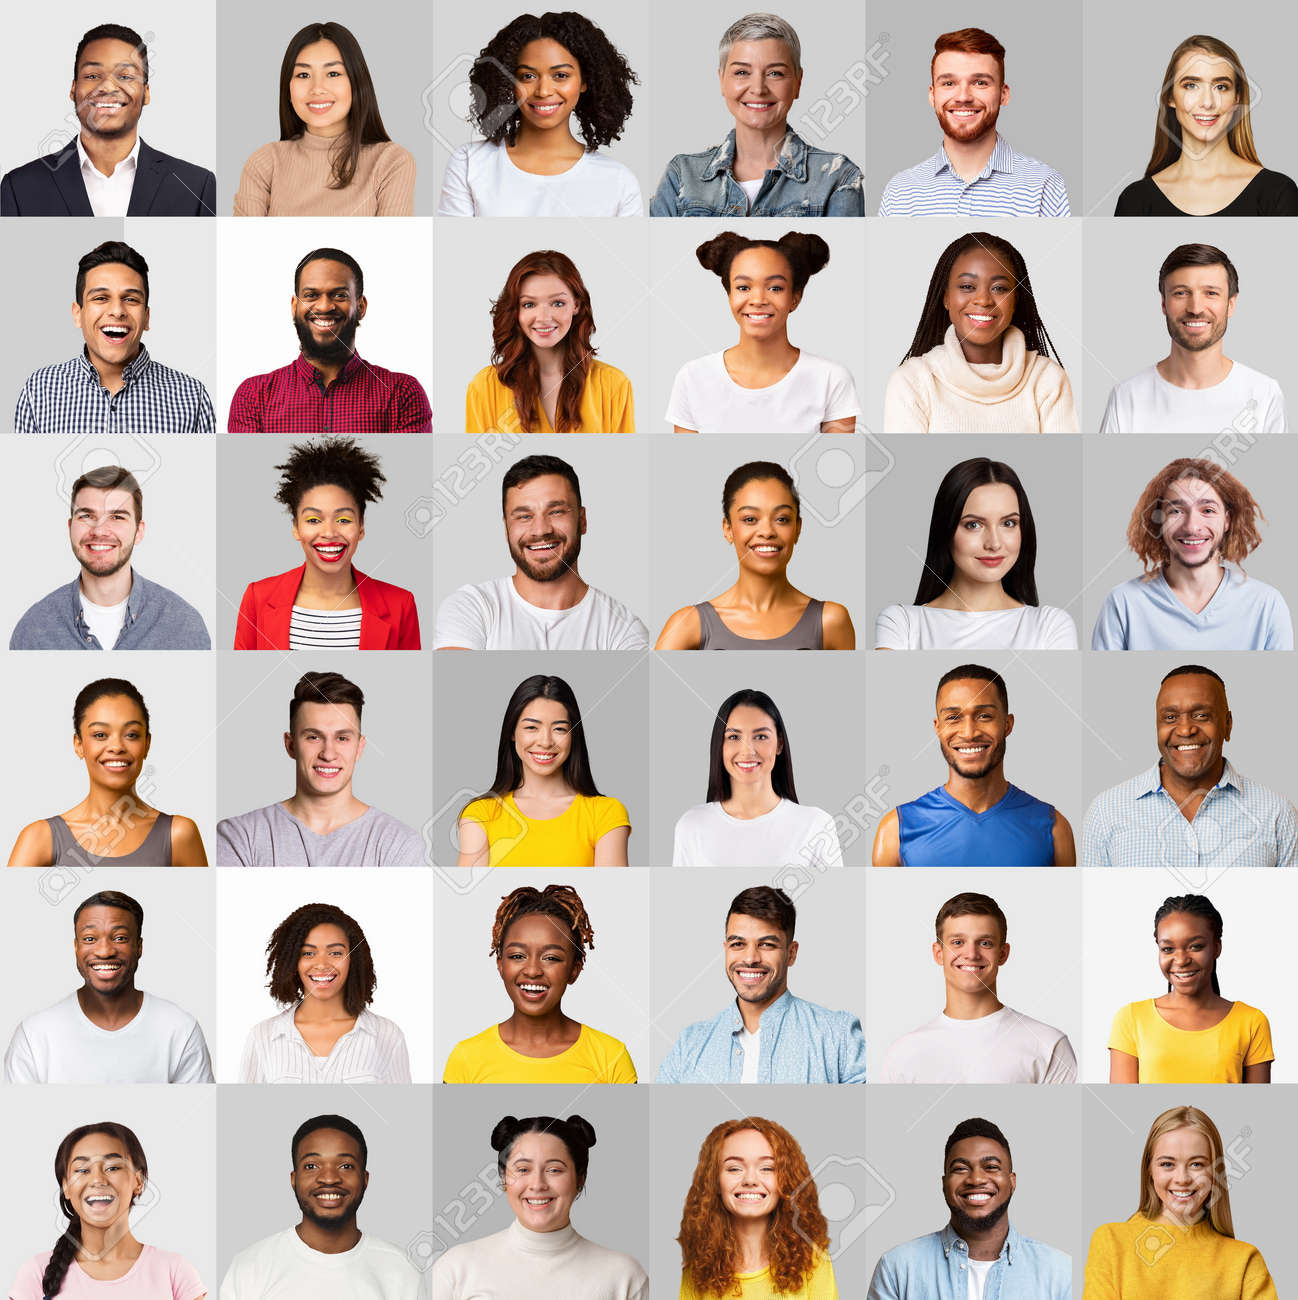 Faces Of Multicultural Young People On Light Gray Backgrounds, Collage - 165837959